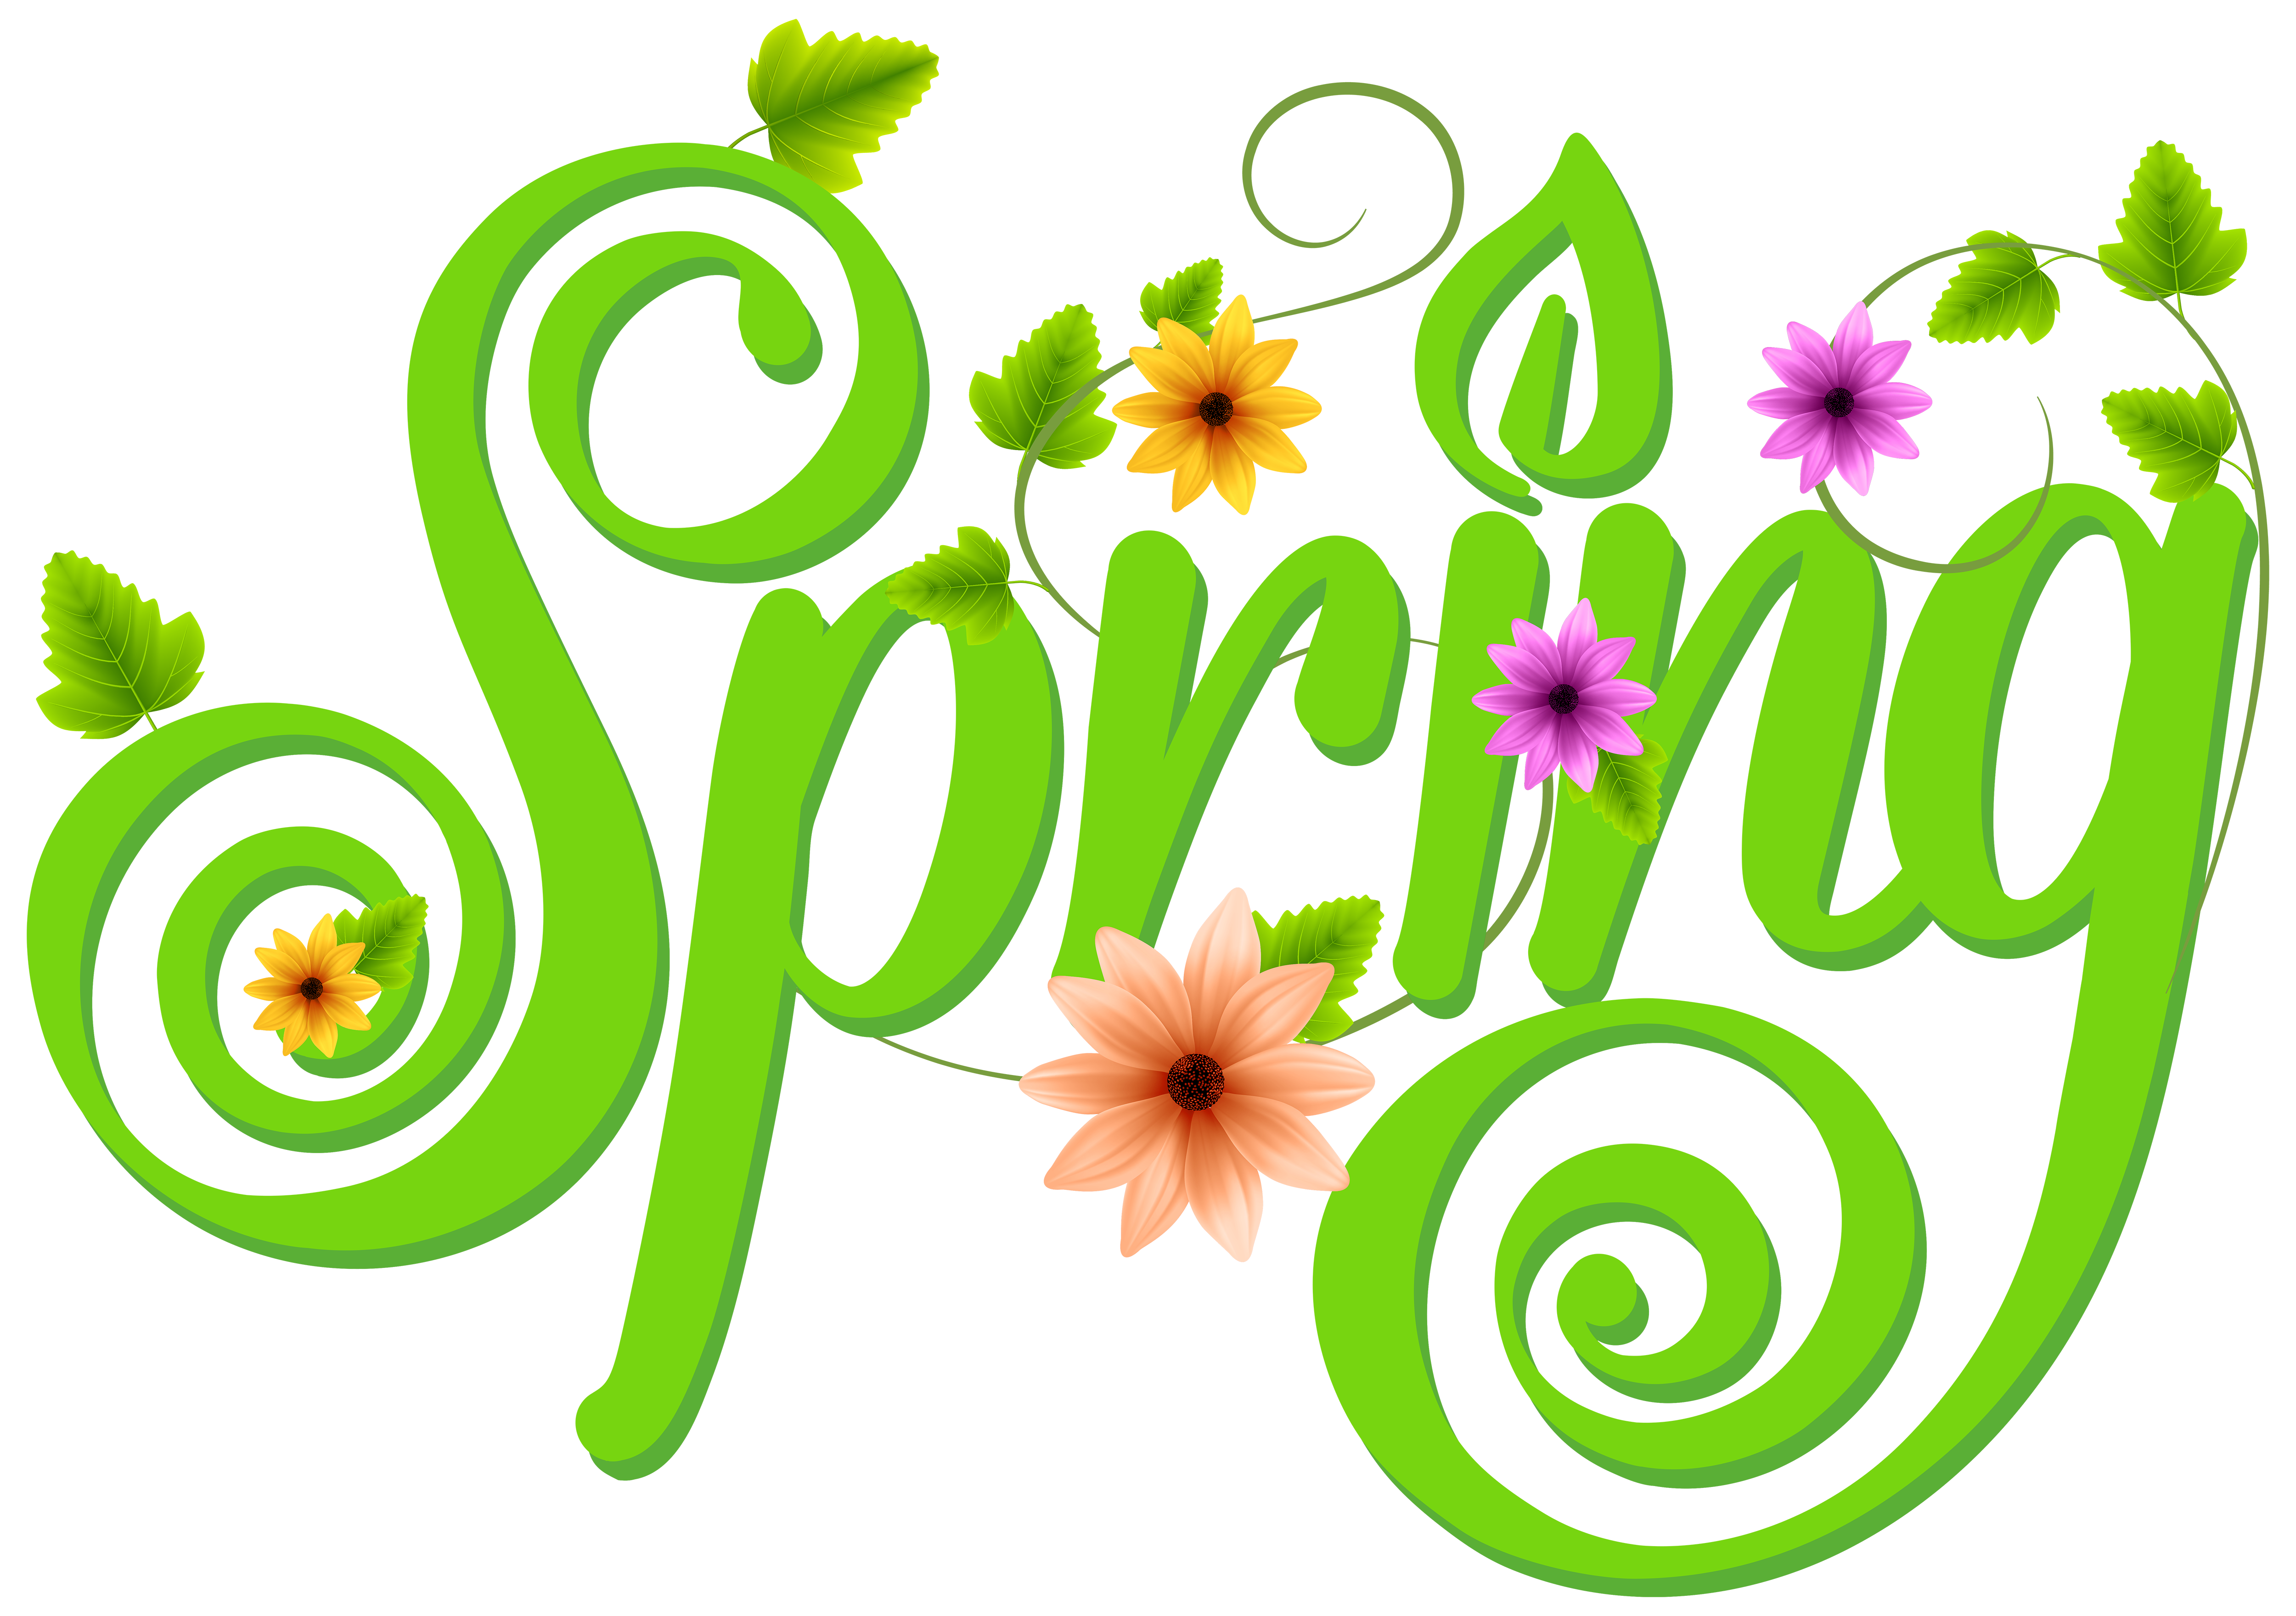 Spring text png. Transparent encode clipart to